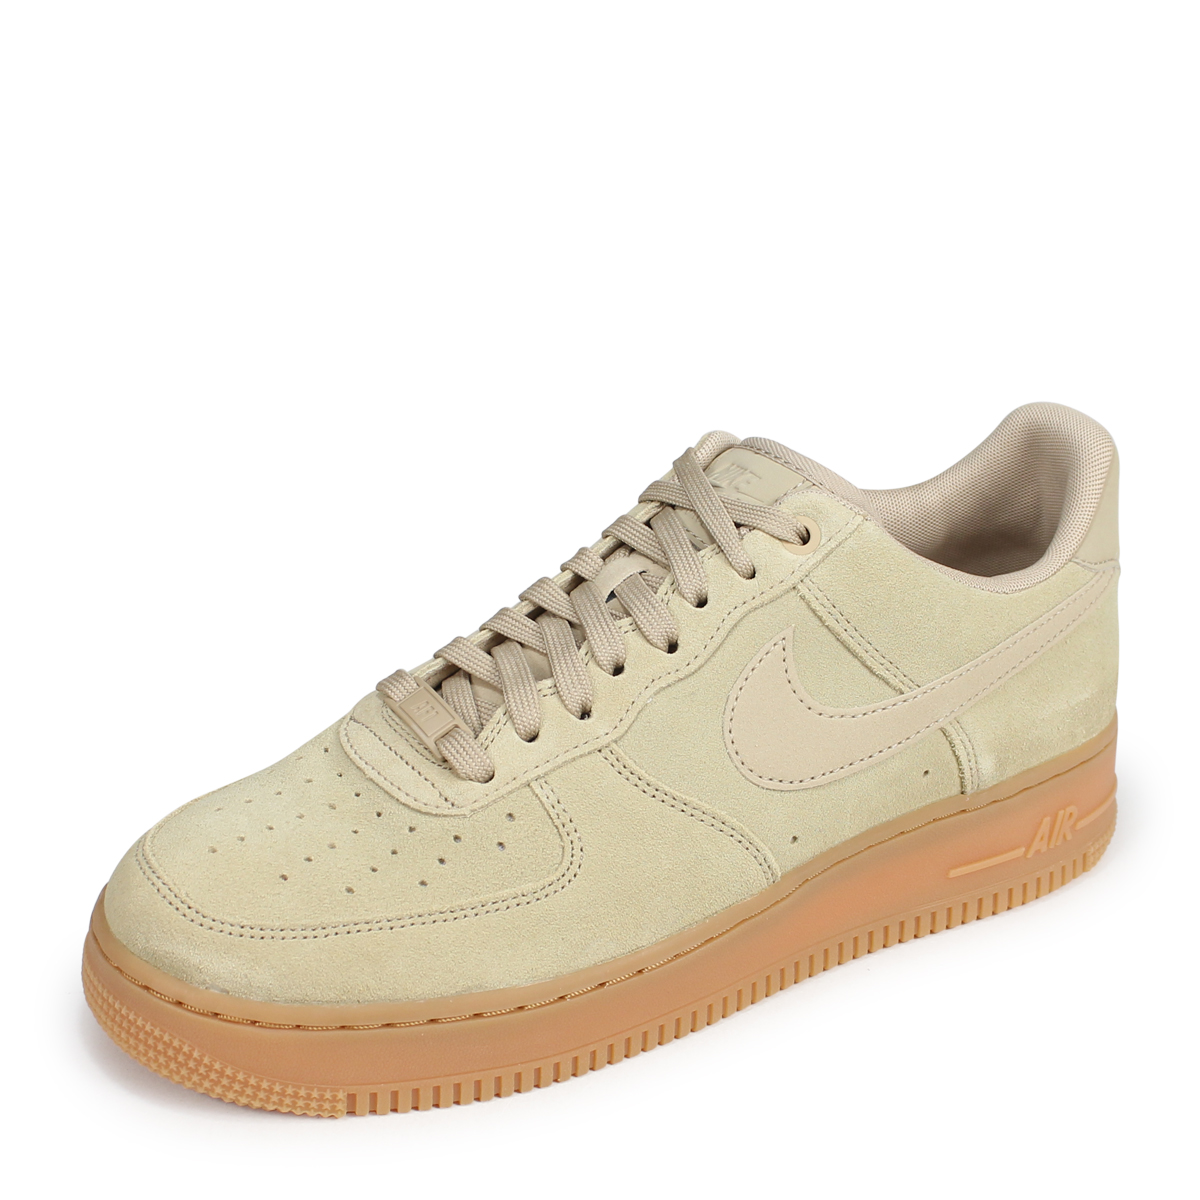 new product 0fc32 7626a NIKE AIR FORCE 1 07 LV8 SUEDE Nike air force 1 sneakers men AA1117-200  beige  load planned Shinnyu load in reservation product 9 25 containing    189